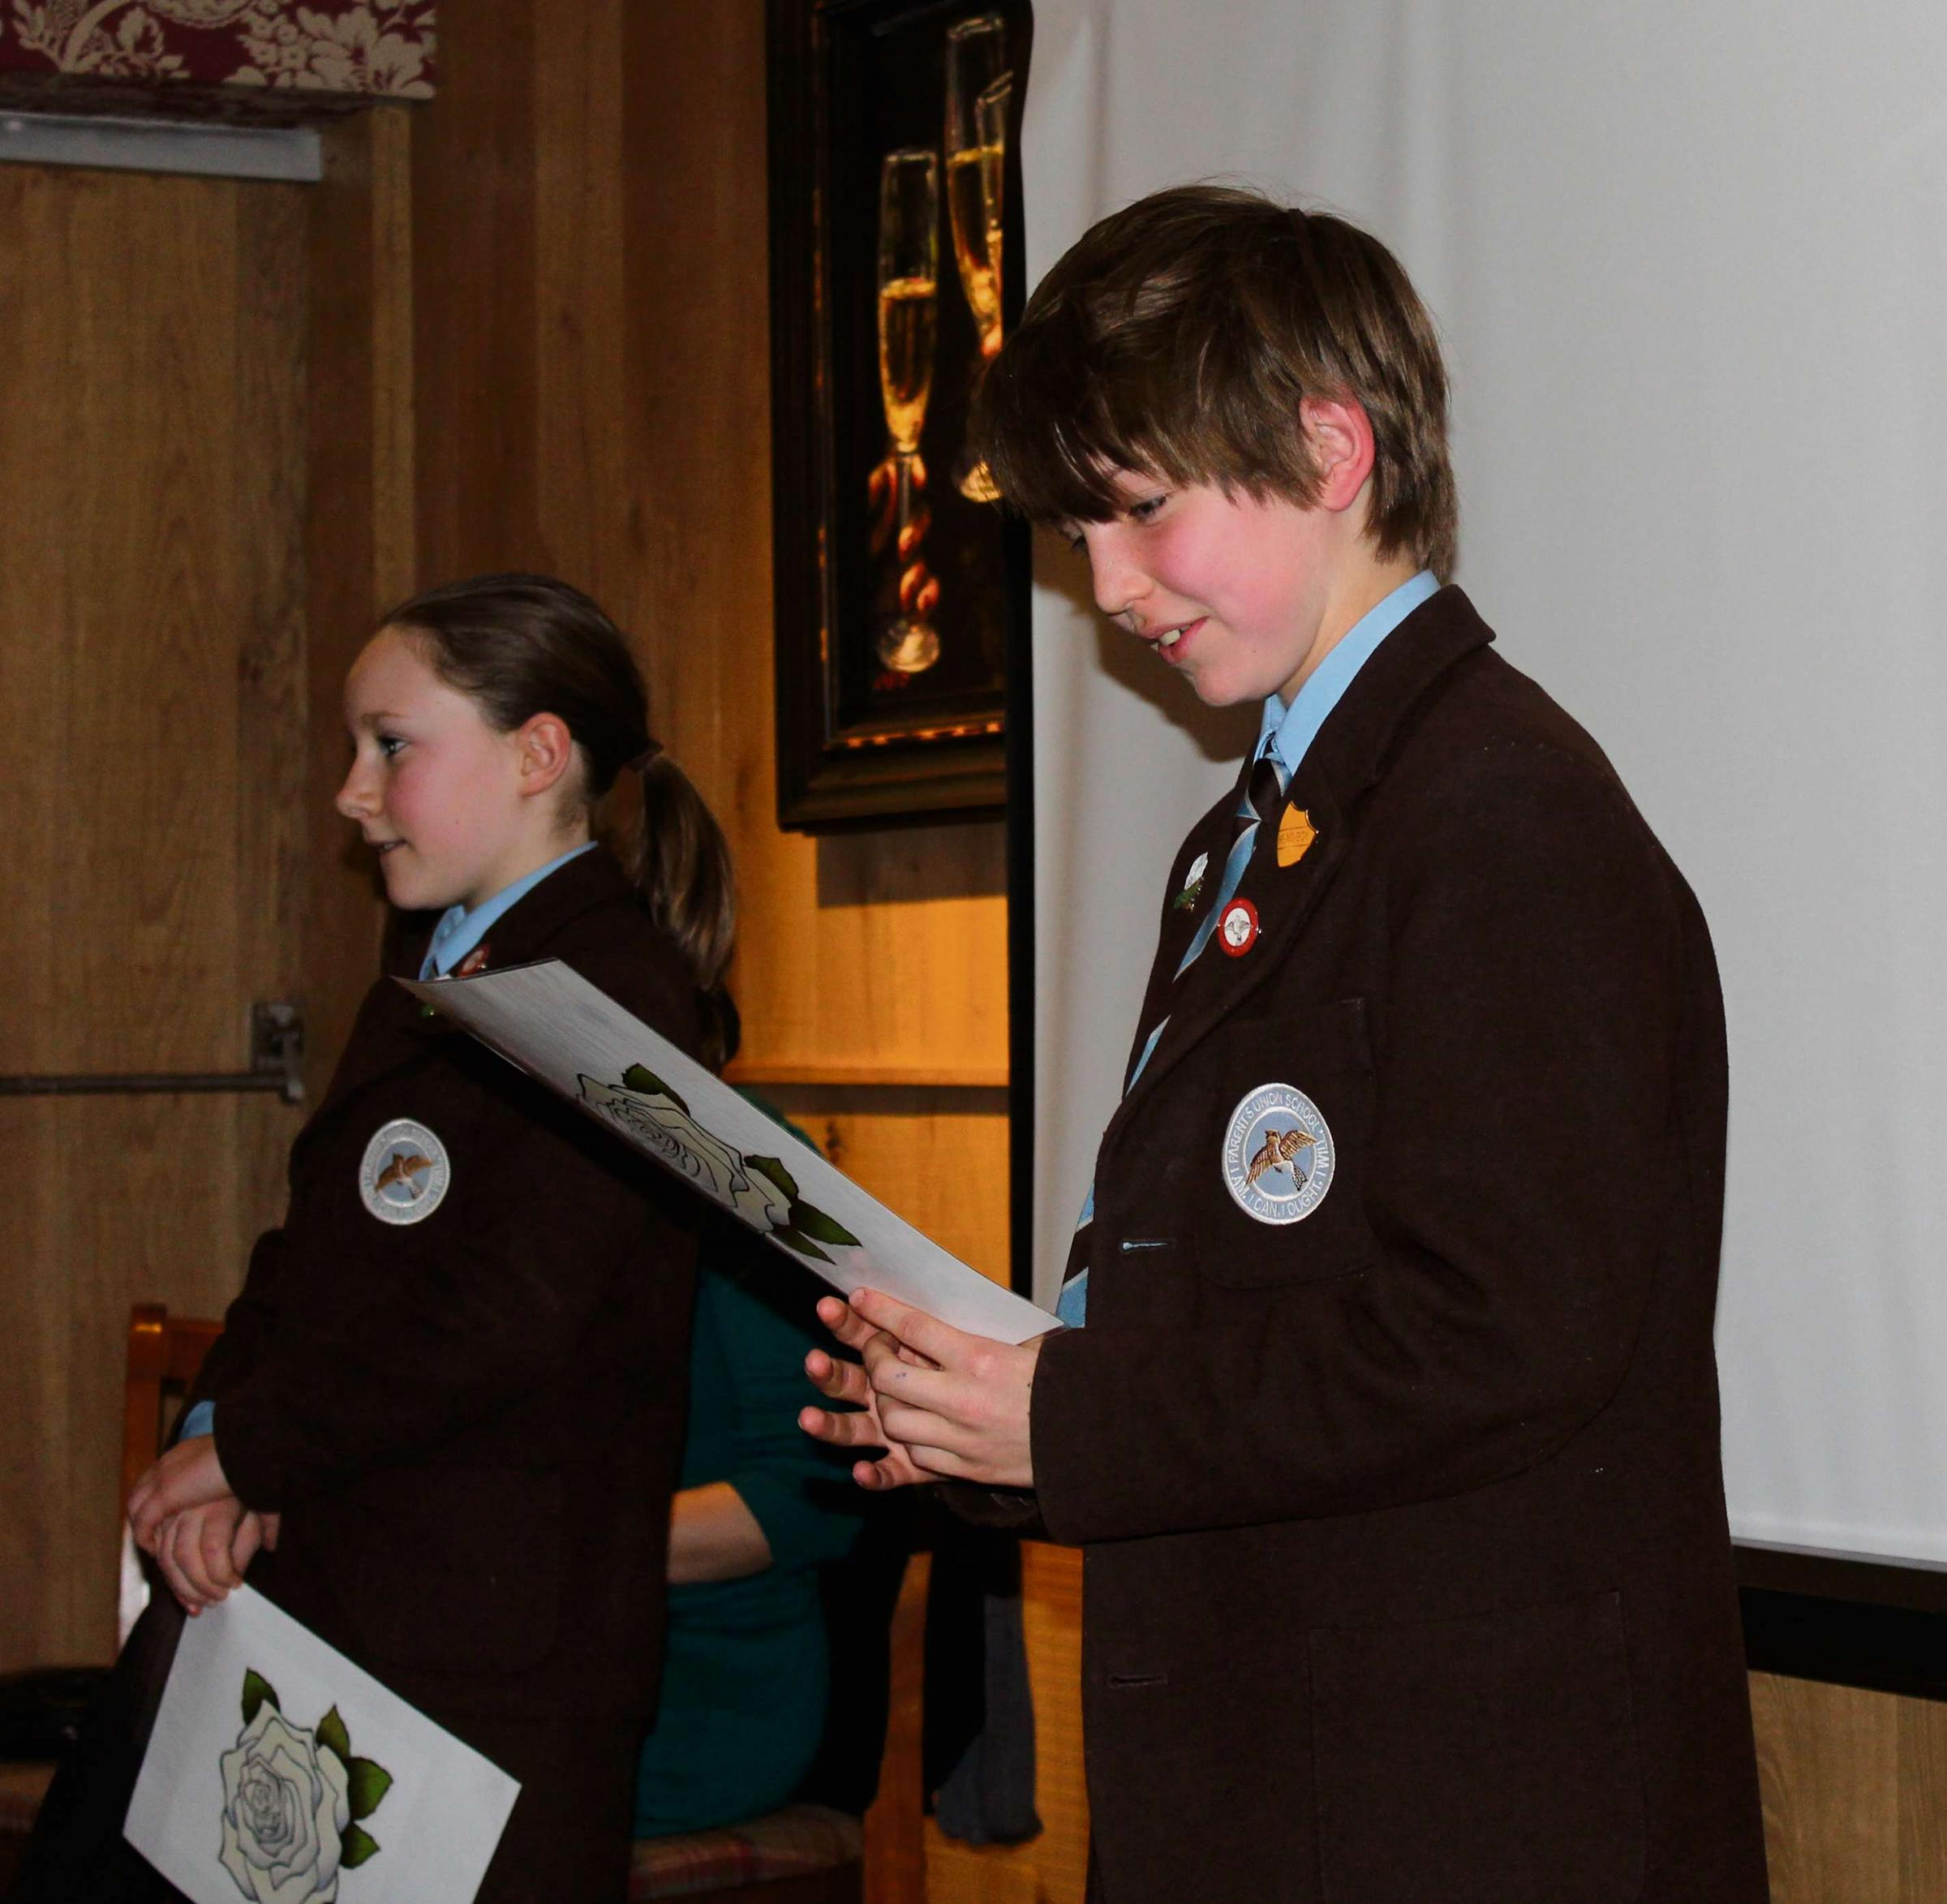 Head girl Amelia Drinkwater and head boy Nicholas Emsley, who both gave a speech at the fundraising launch